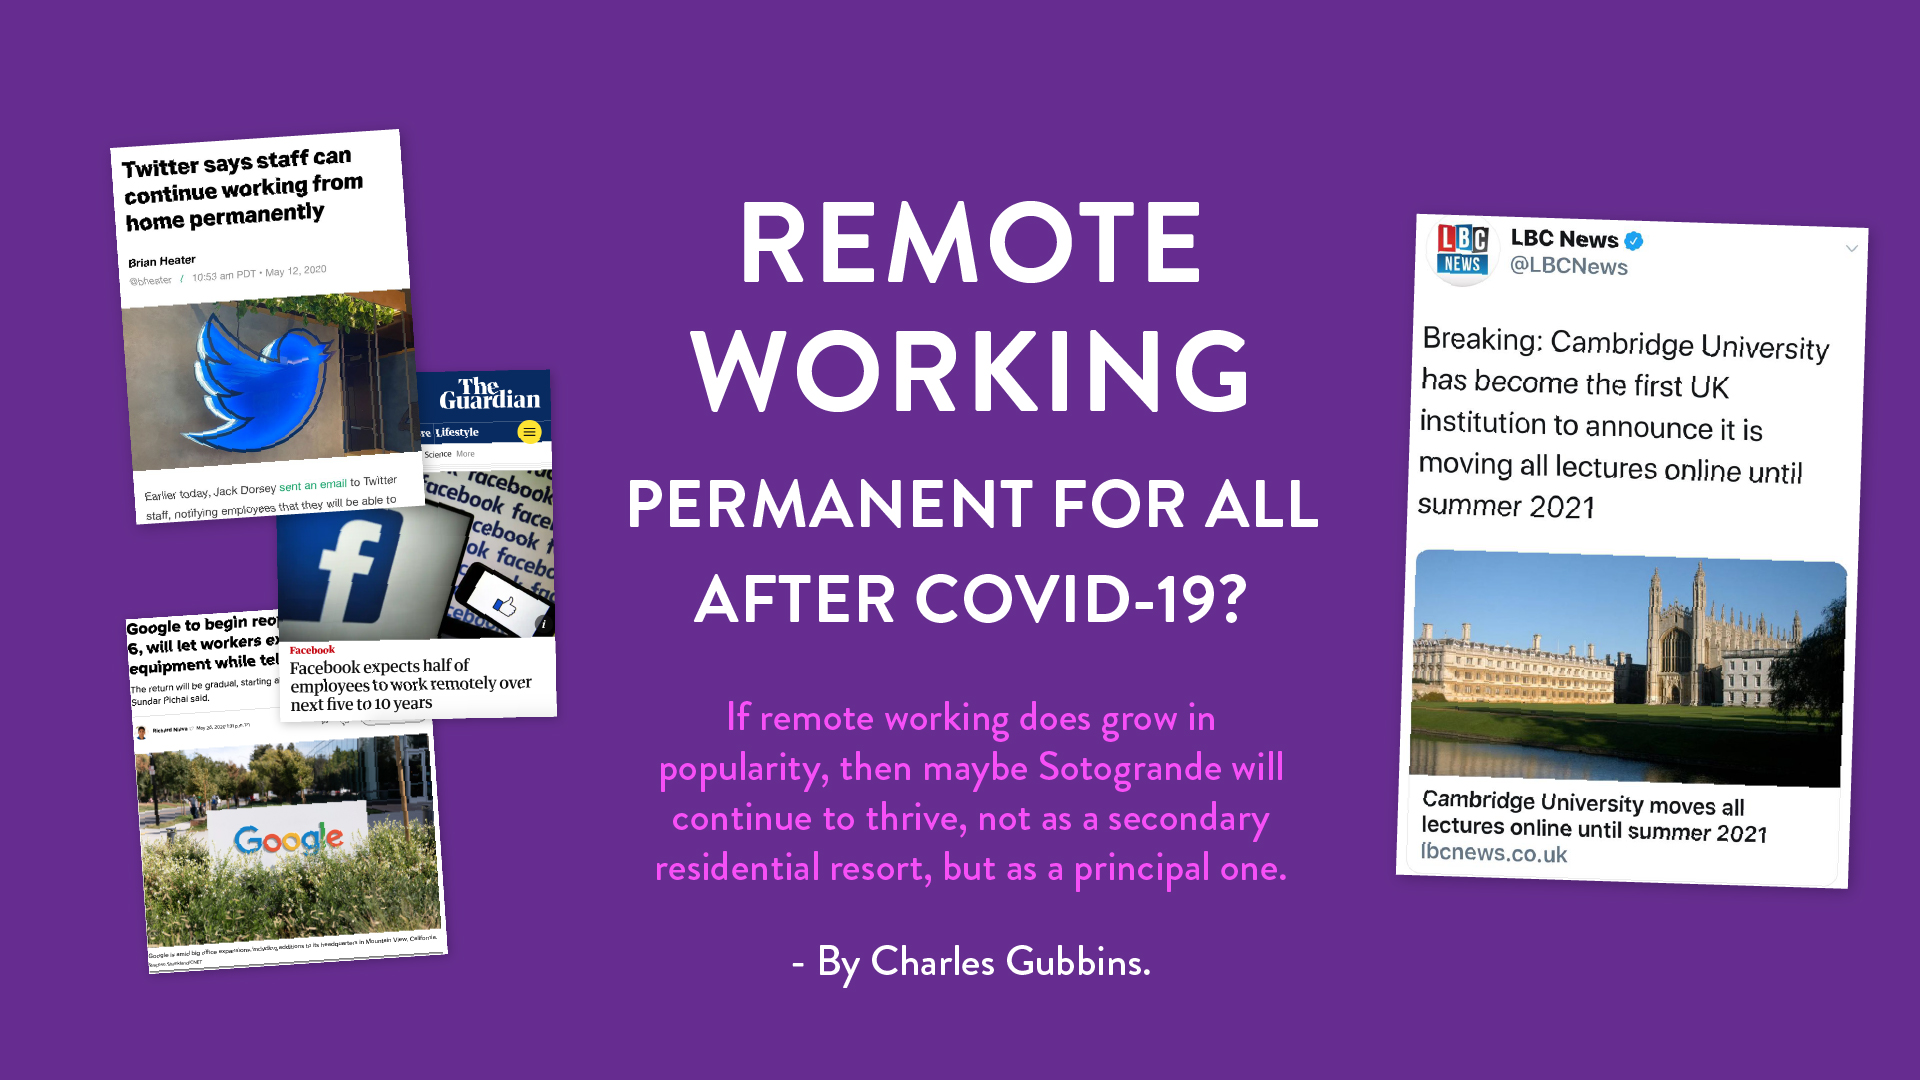 remote-working-permanent-after-covid19-noll-sotogrande-charles-gubbins